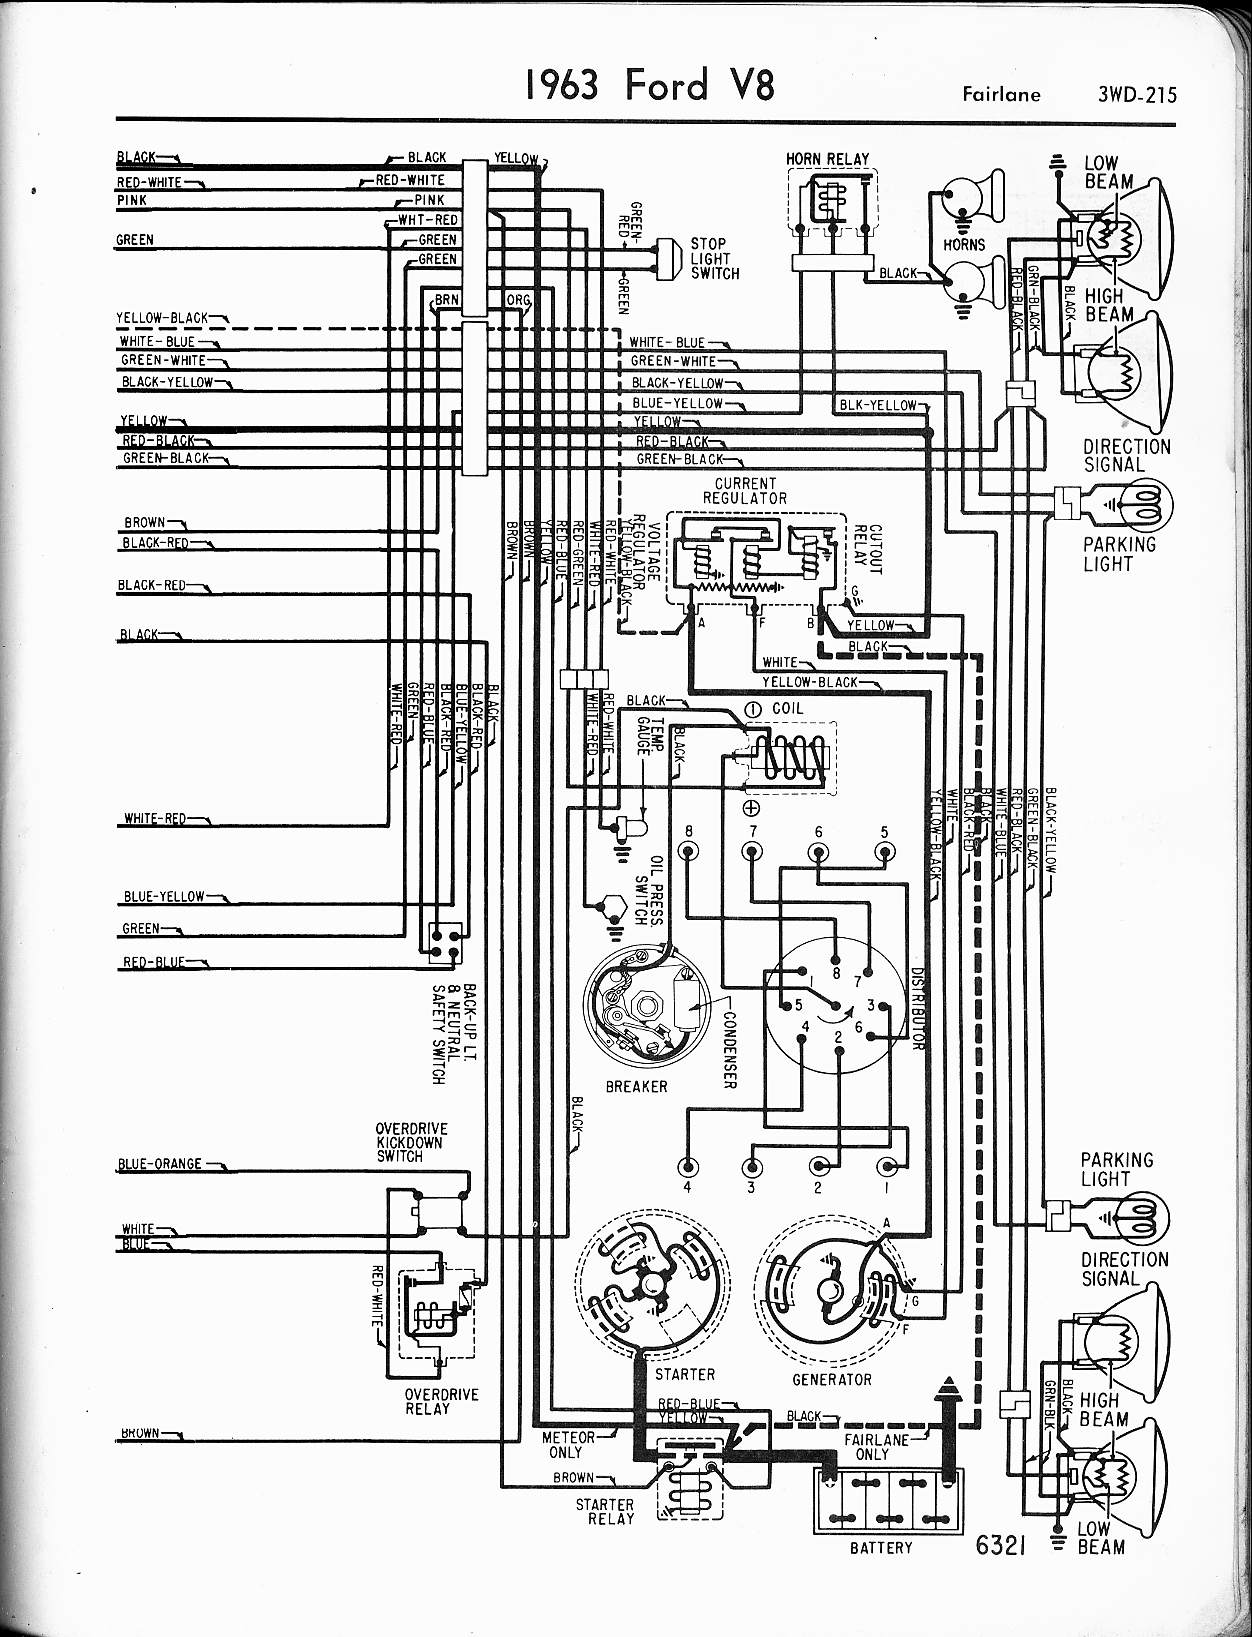 hight resolution of 1963 ford fairlane wiring diagram wiring diagram third level 1967 camaro wiring diagram 1962 ford fairlane wiring diagram